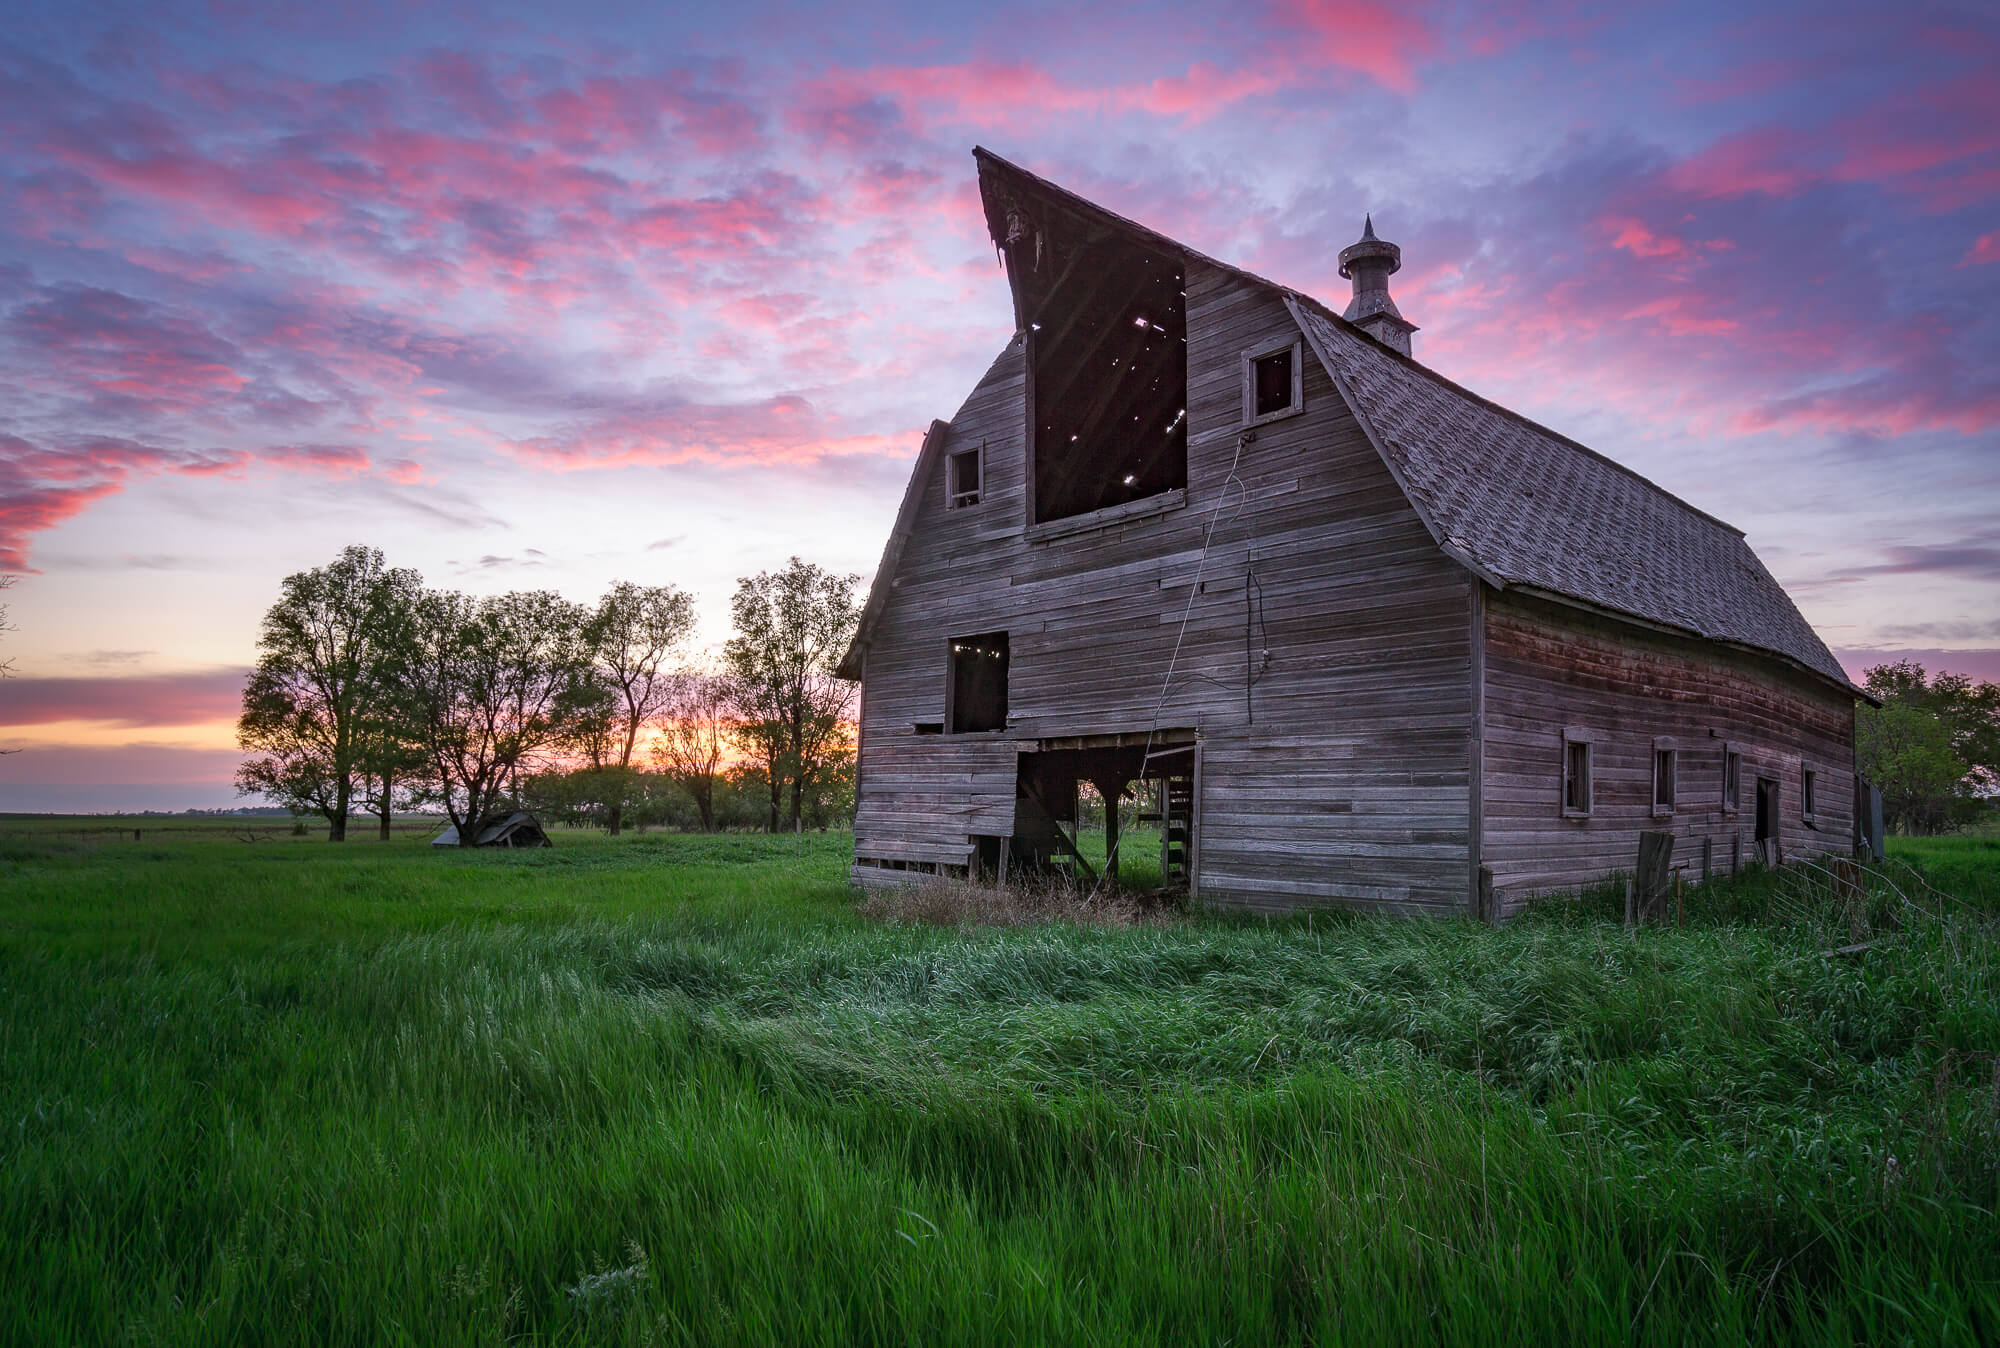 Sunset over an abandoned pole barn